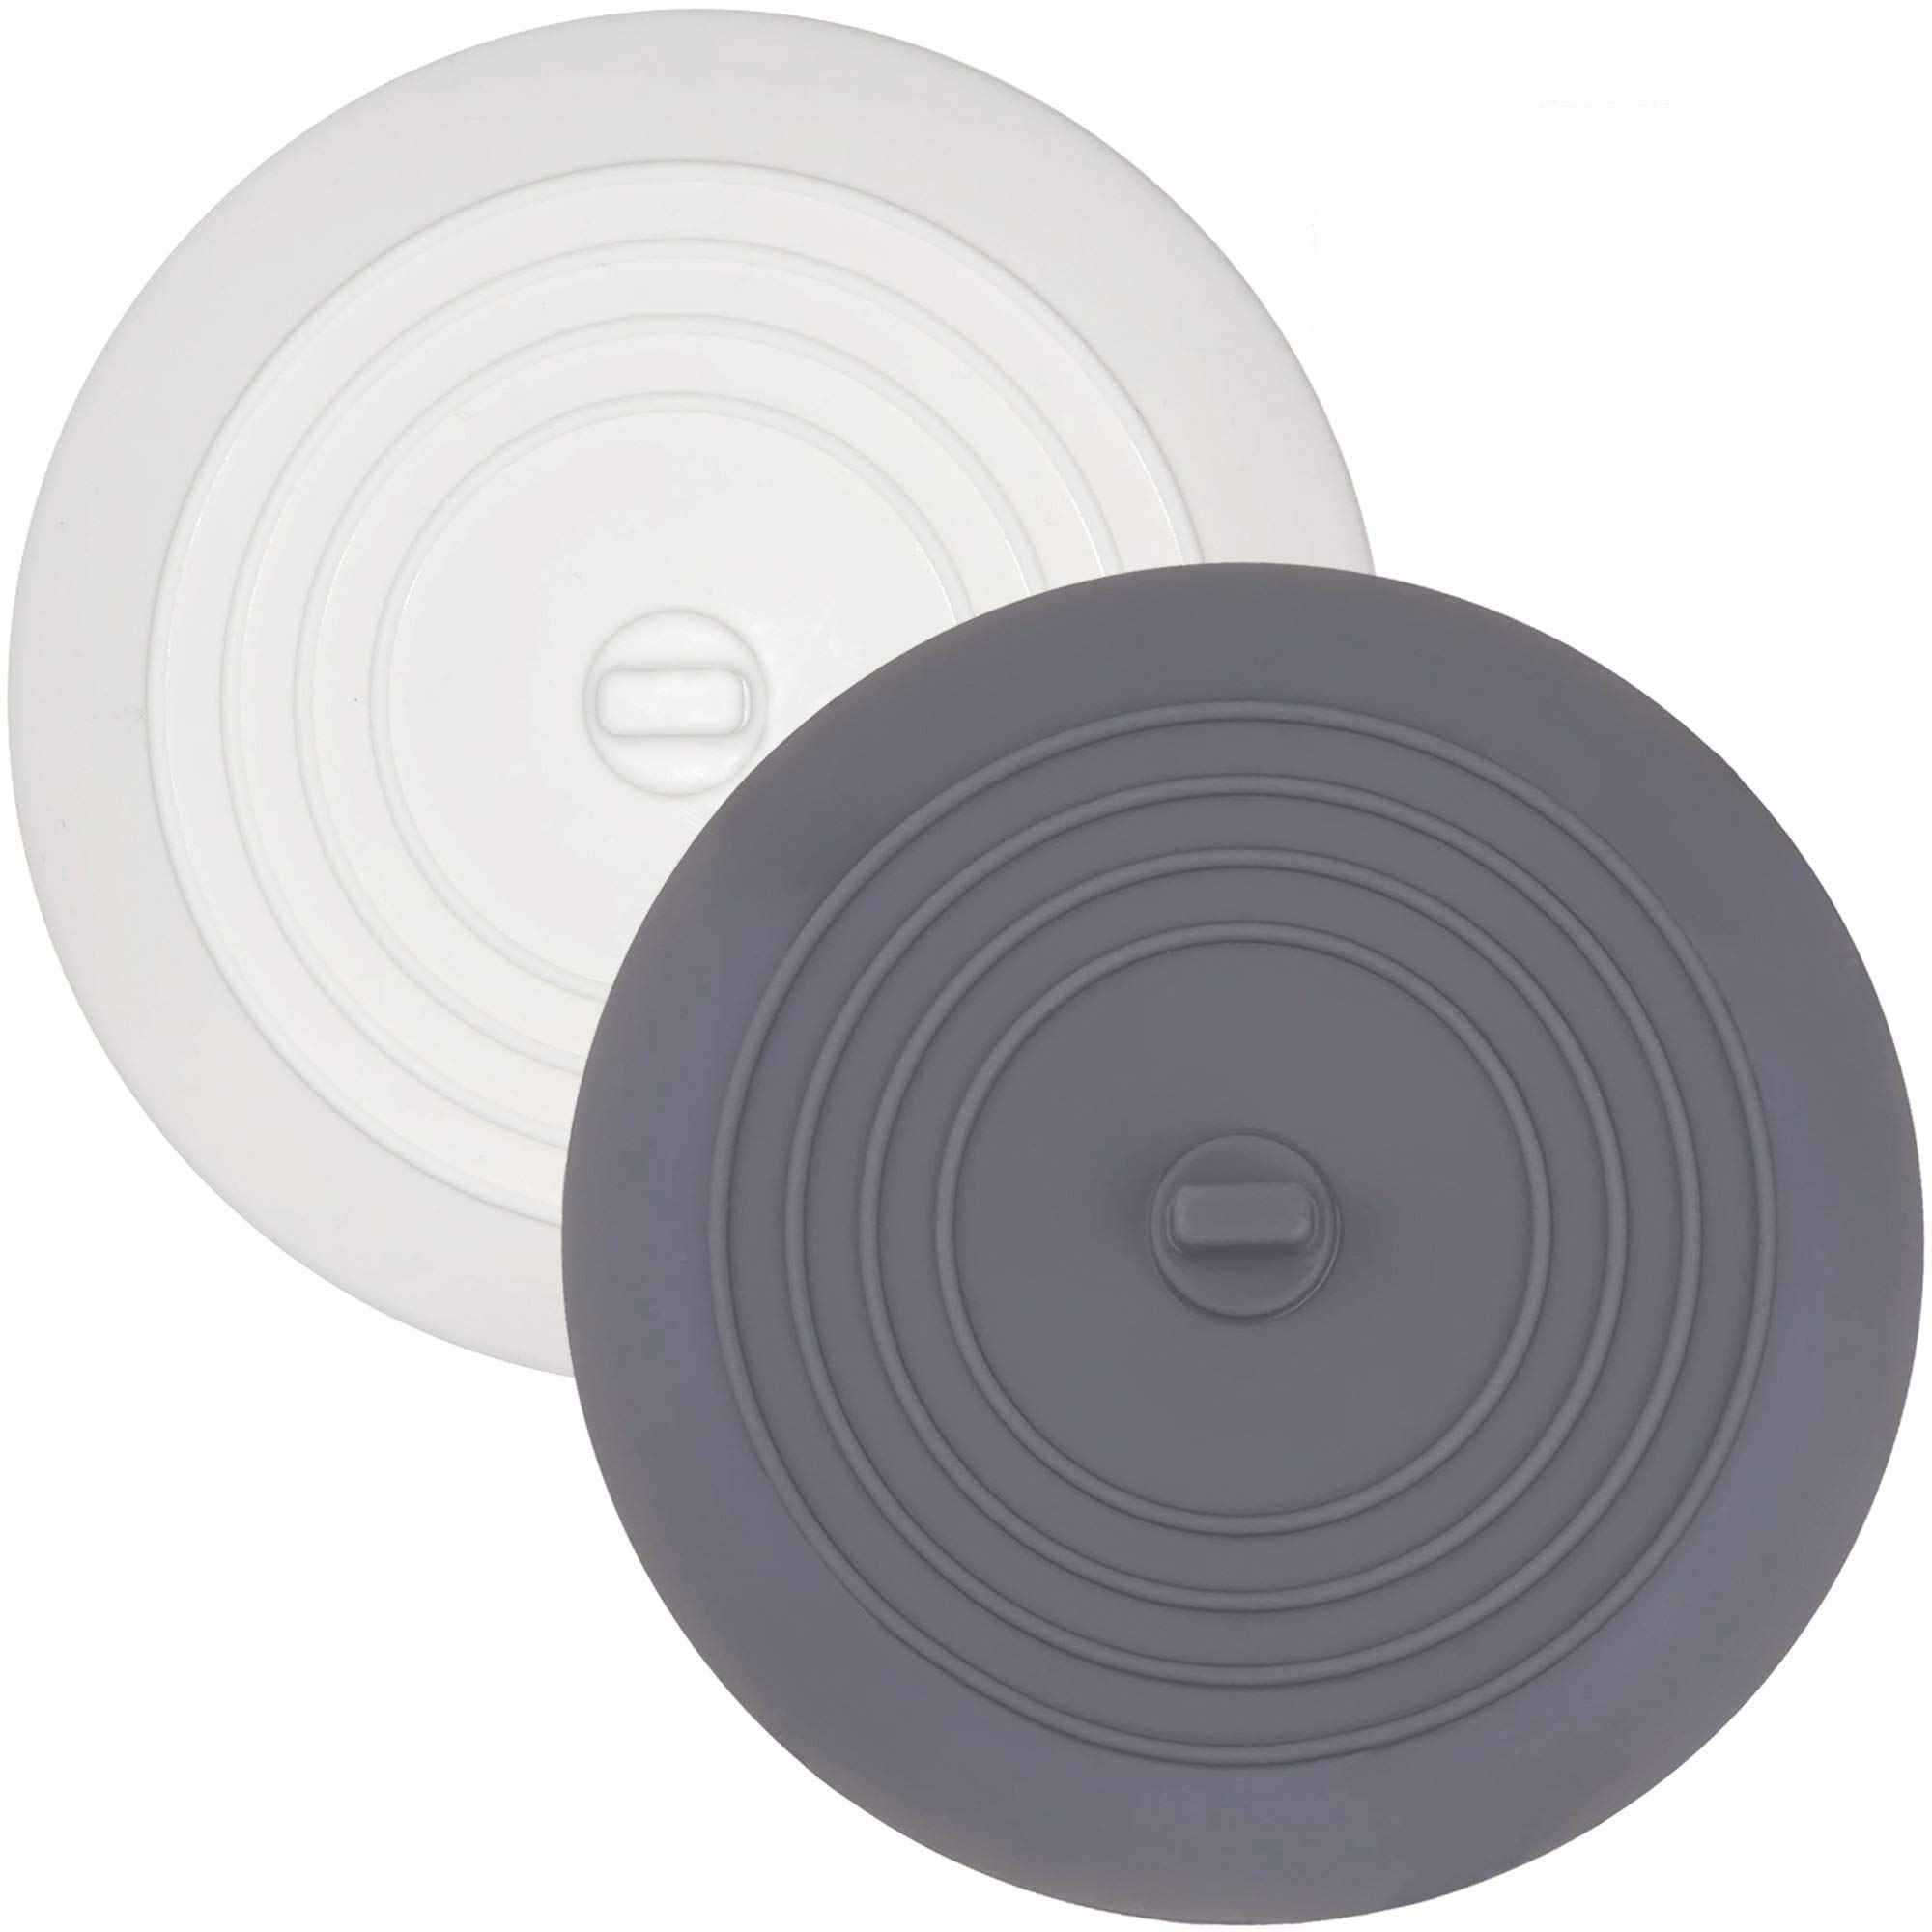 (2 Pack) Silicone Tub Stopper, Premium Bathtub Drain Stopper, One of the